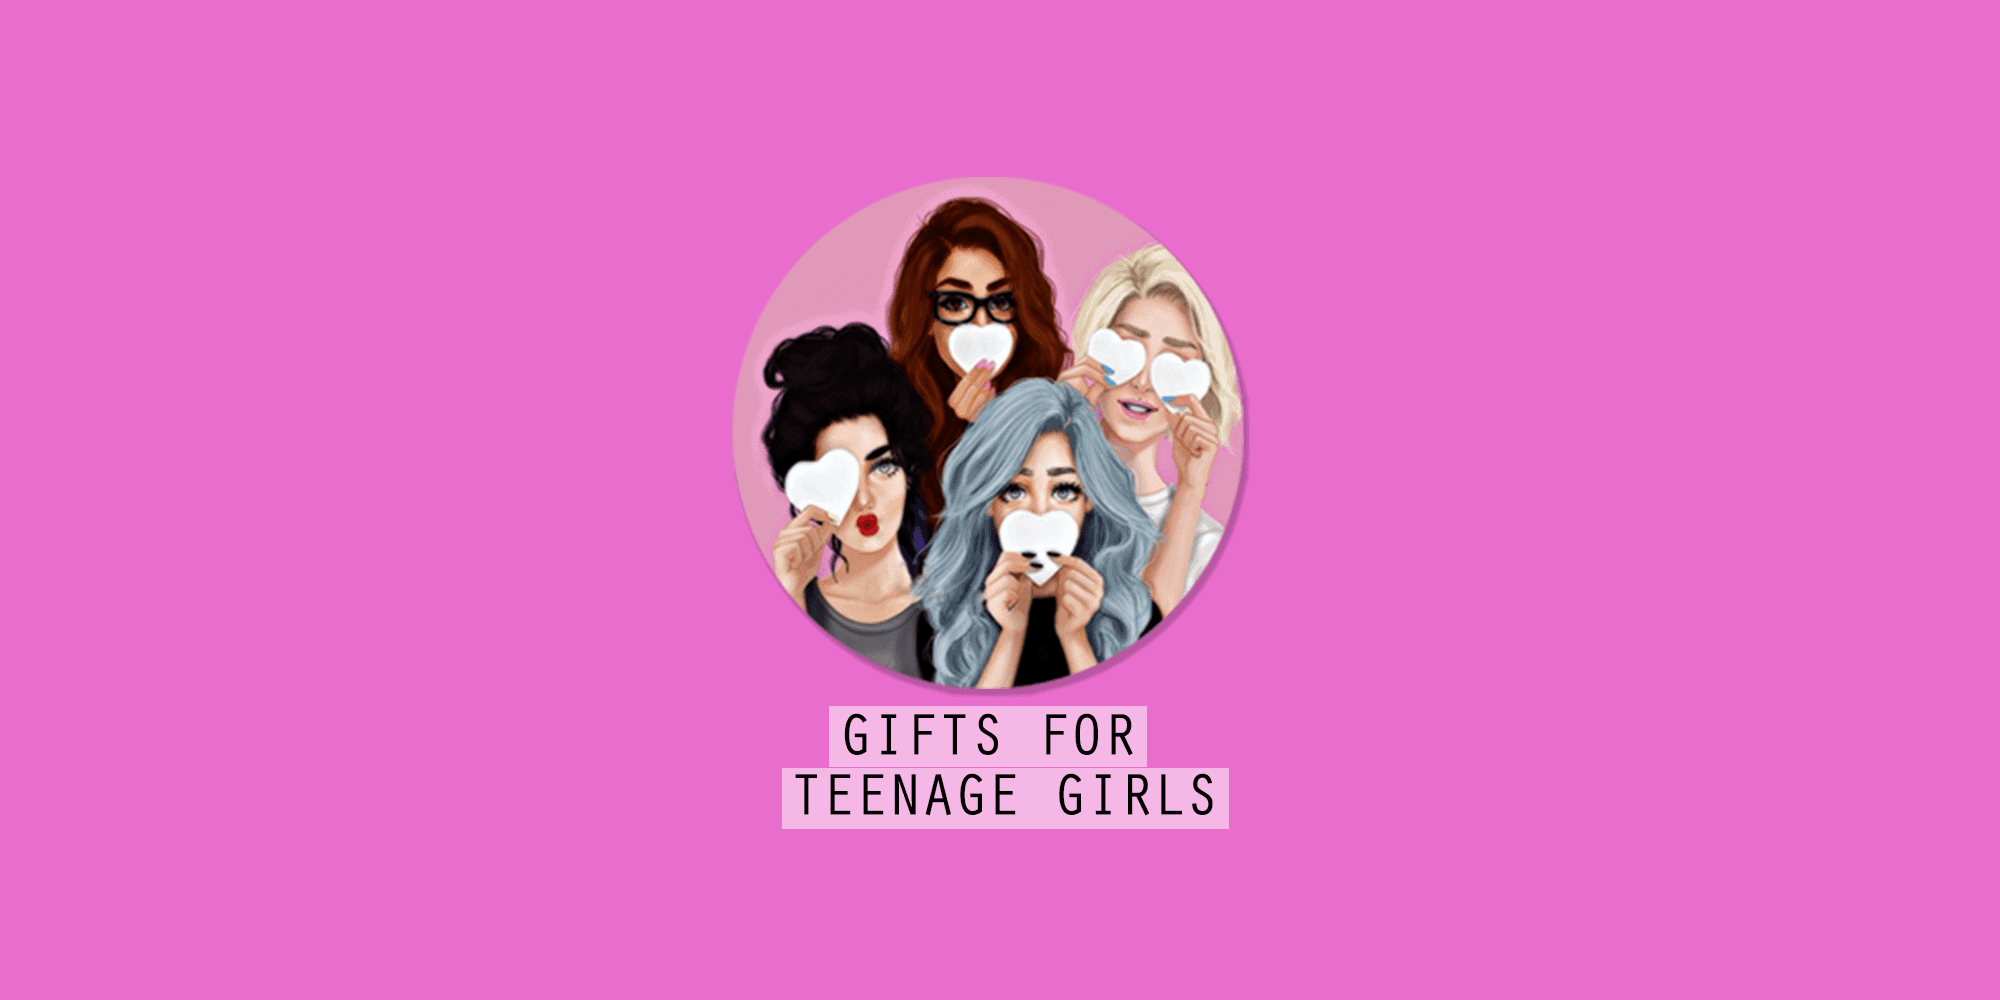 Best Gifts For Teenage Girls: 77+ Awesome Ideas for 2020